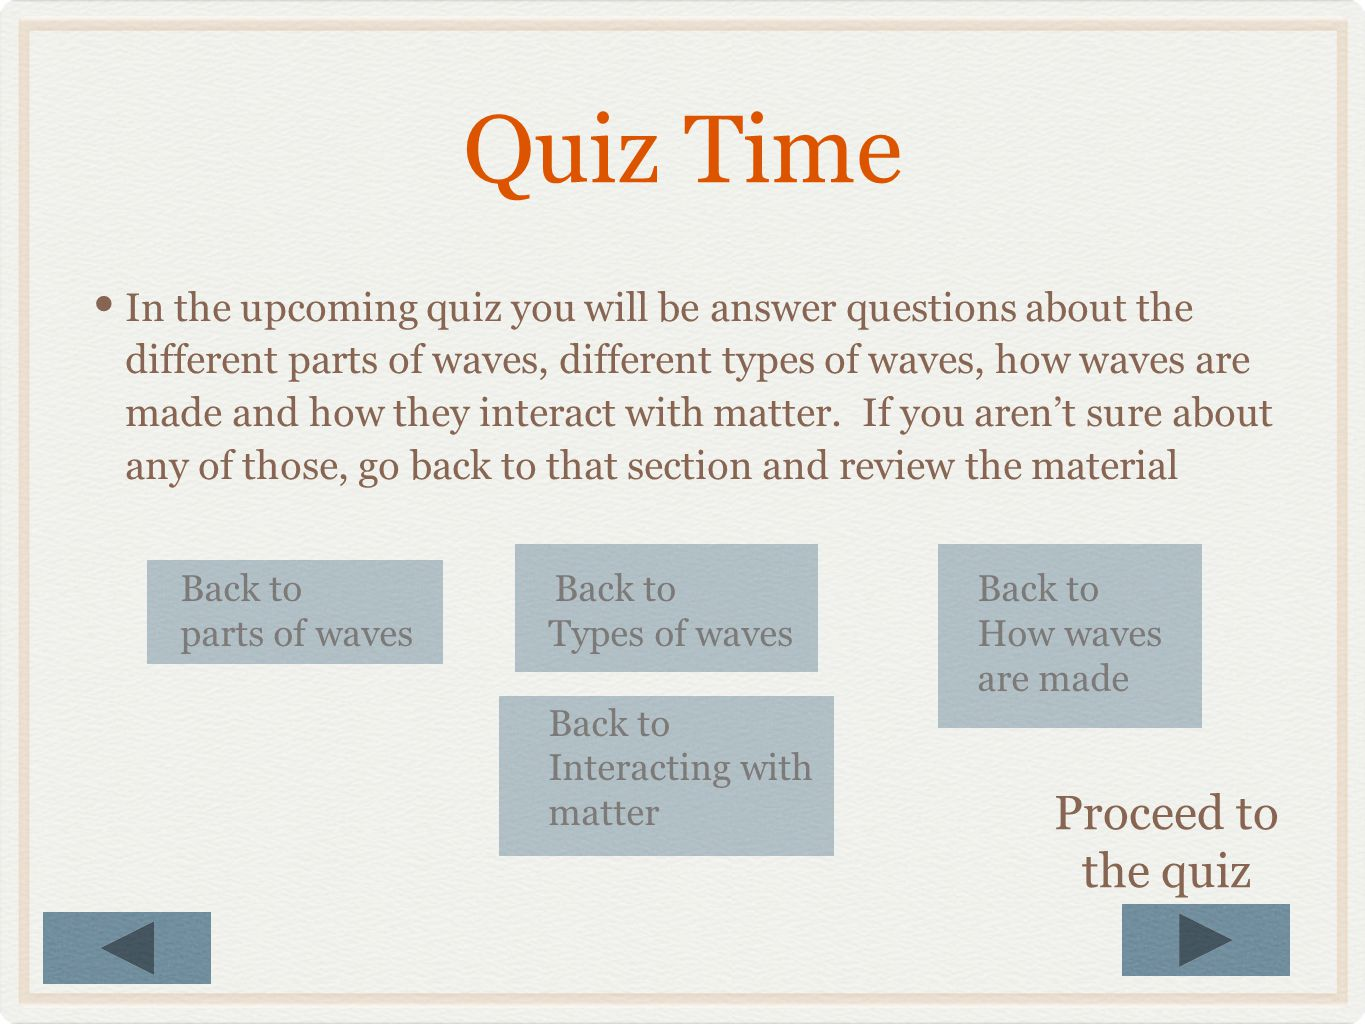 Quiz Time Proceed to the quiz